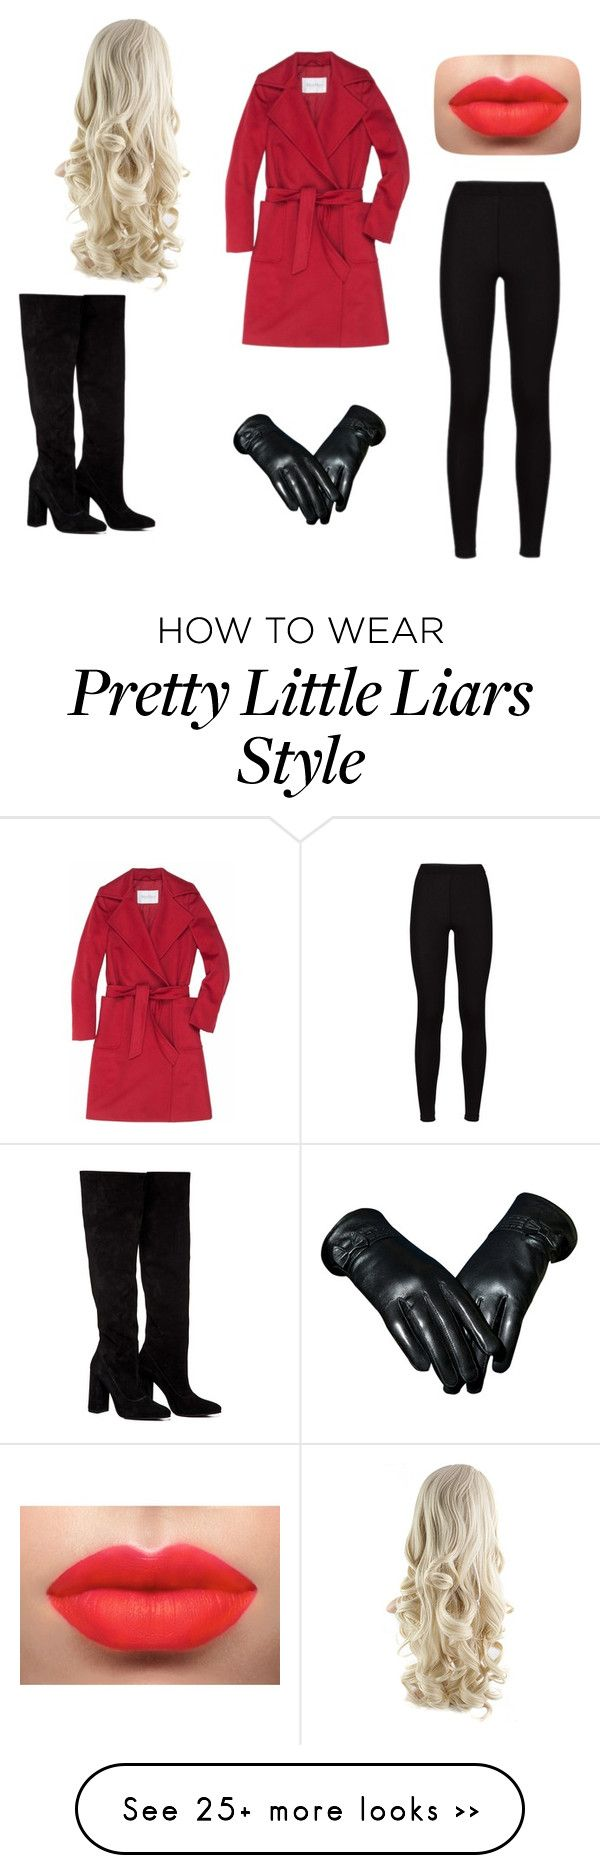 """Halloween 'Red Coat' Pretty Little Liars"" by cottoncandykid on Polyvore featuring MaxMara and Anouki"